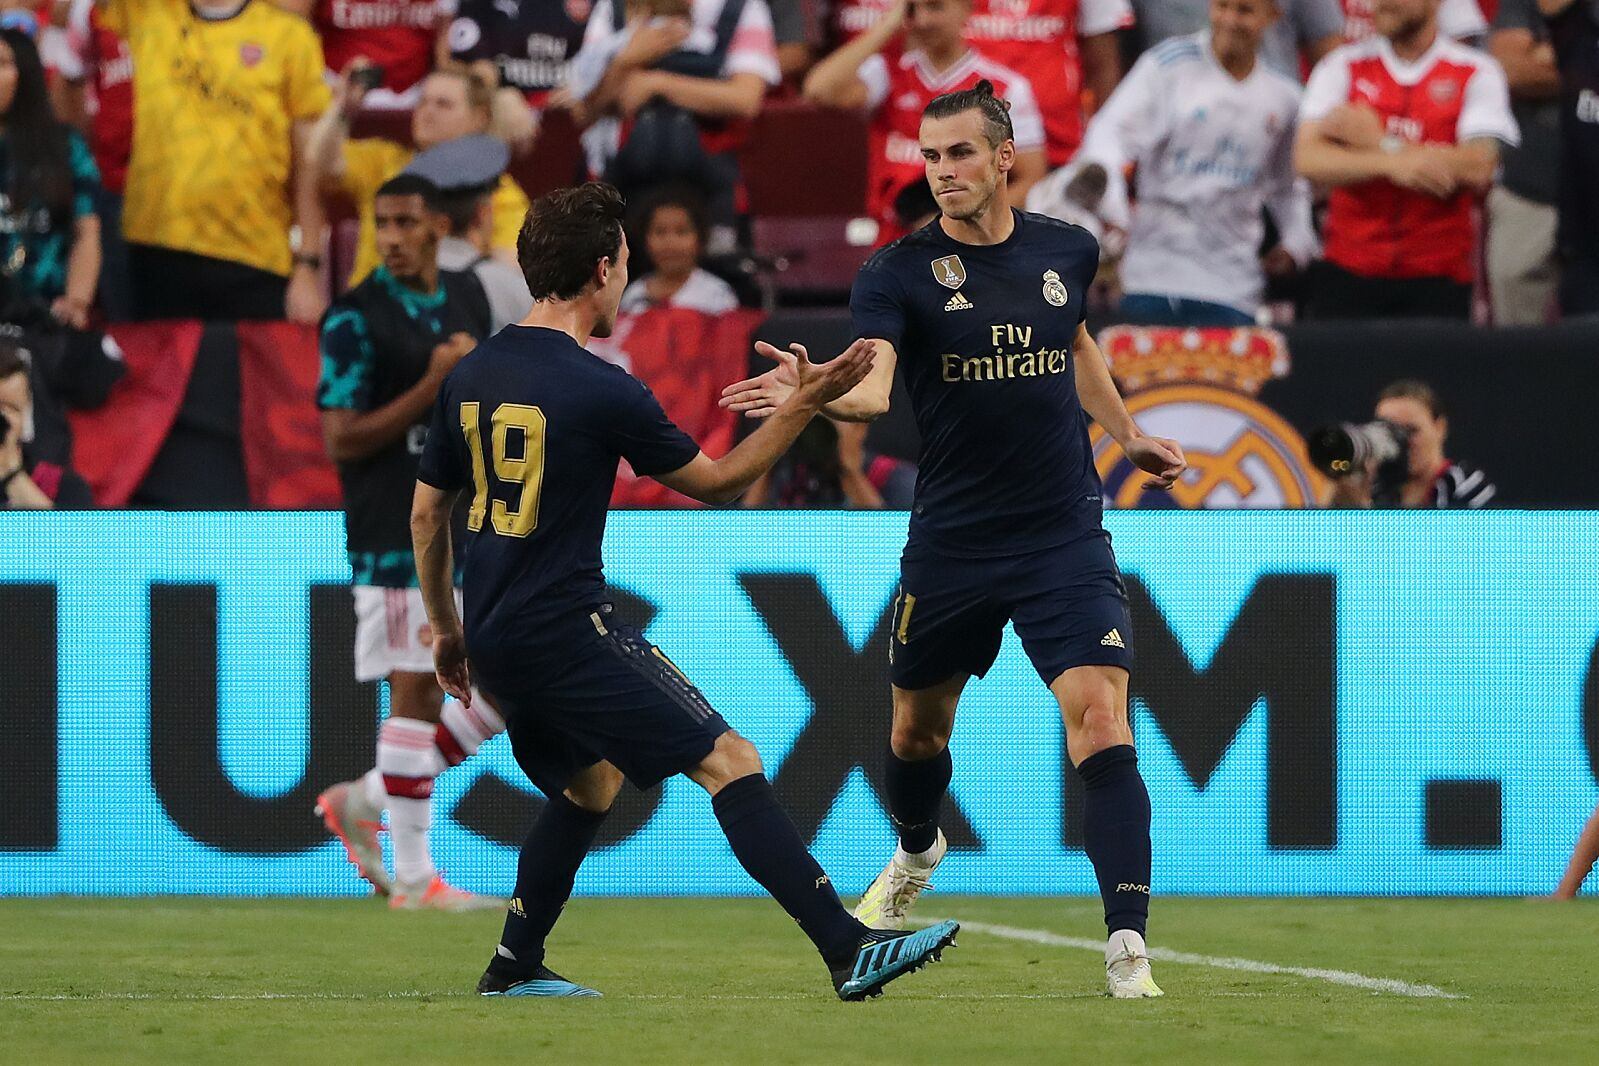 Real Madrid 2 (3) - Arsenal 2(2): Players who impressed and